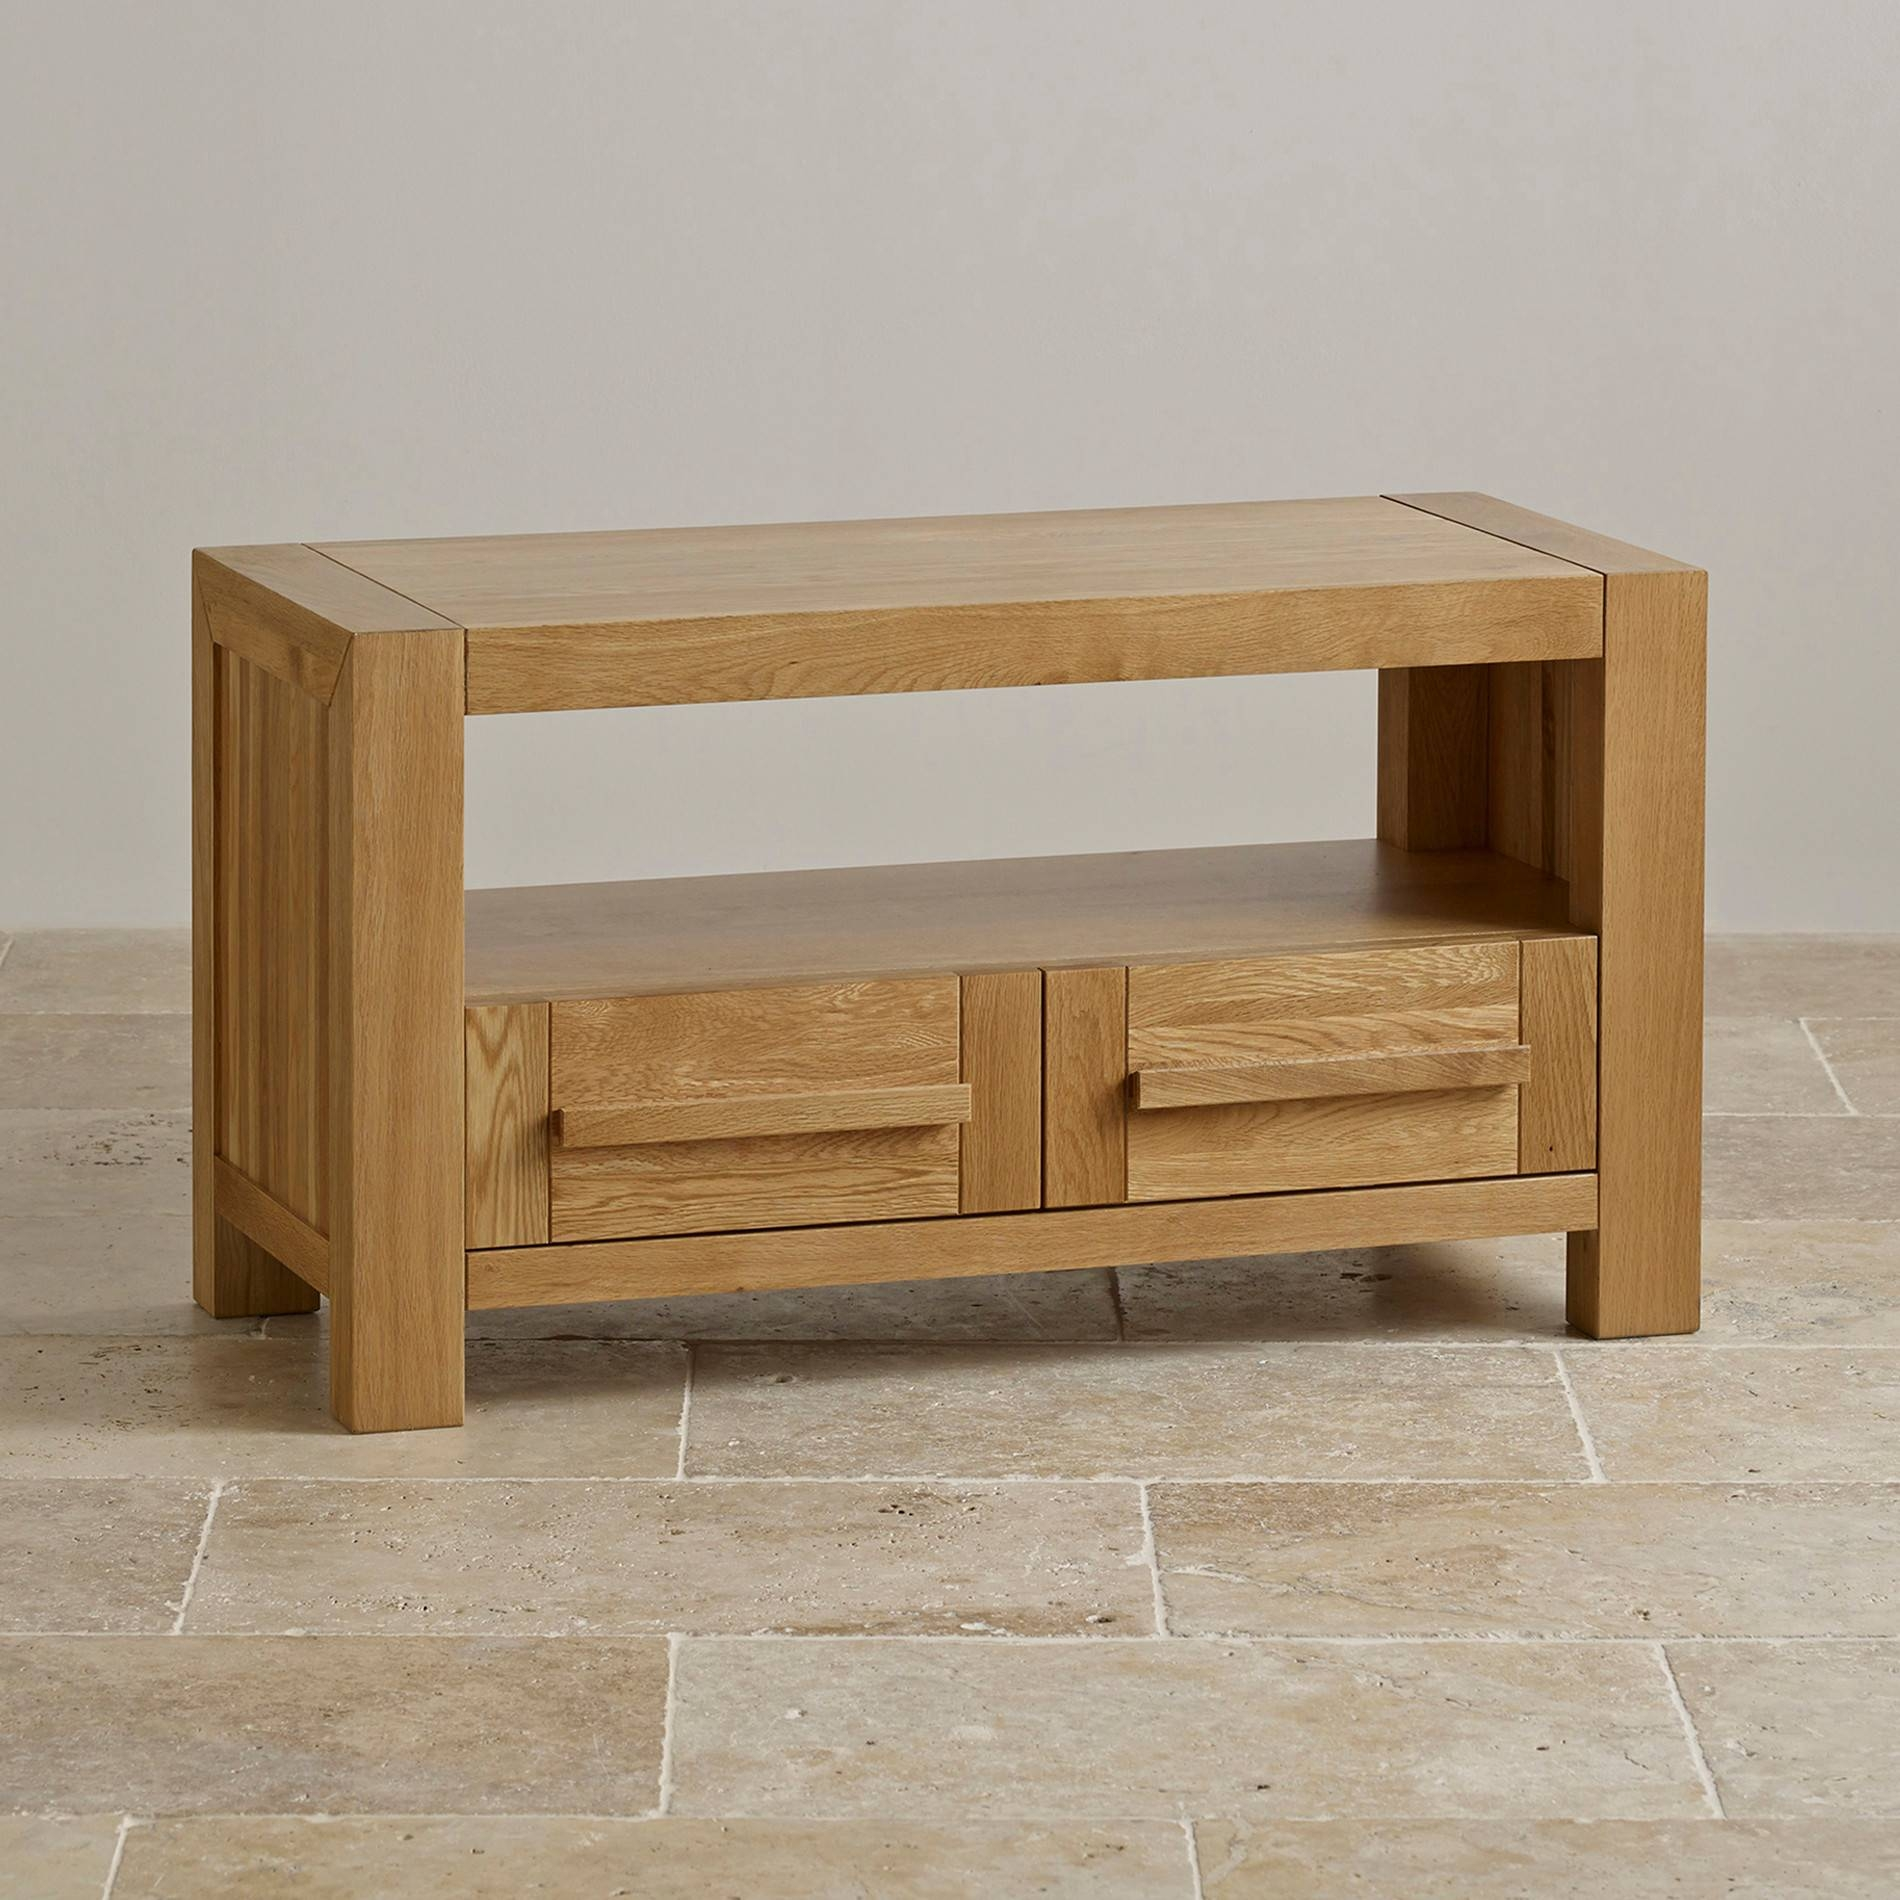 Fresco 2 Drawer Tv Cabinet In Solid Oak | Oak Furniture Land in Oak Tv Cabinets With Doors (Image 4 of 15)